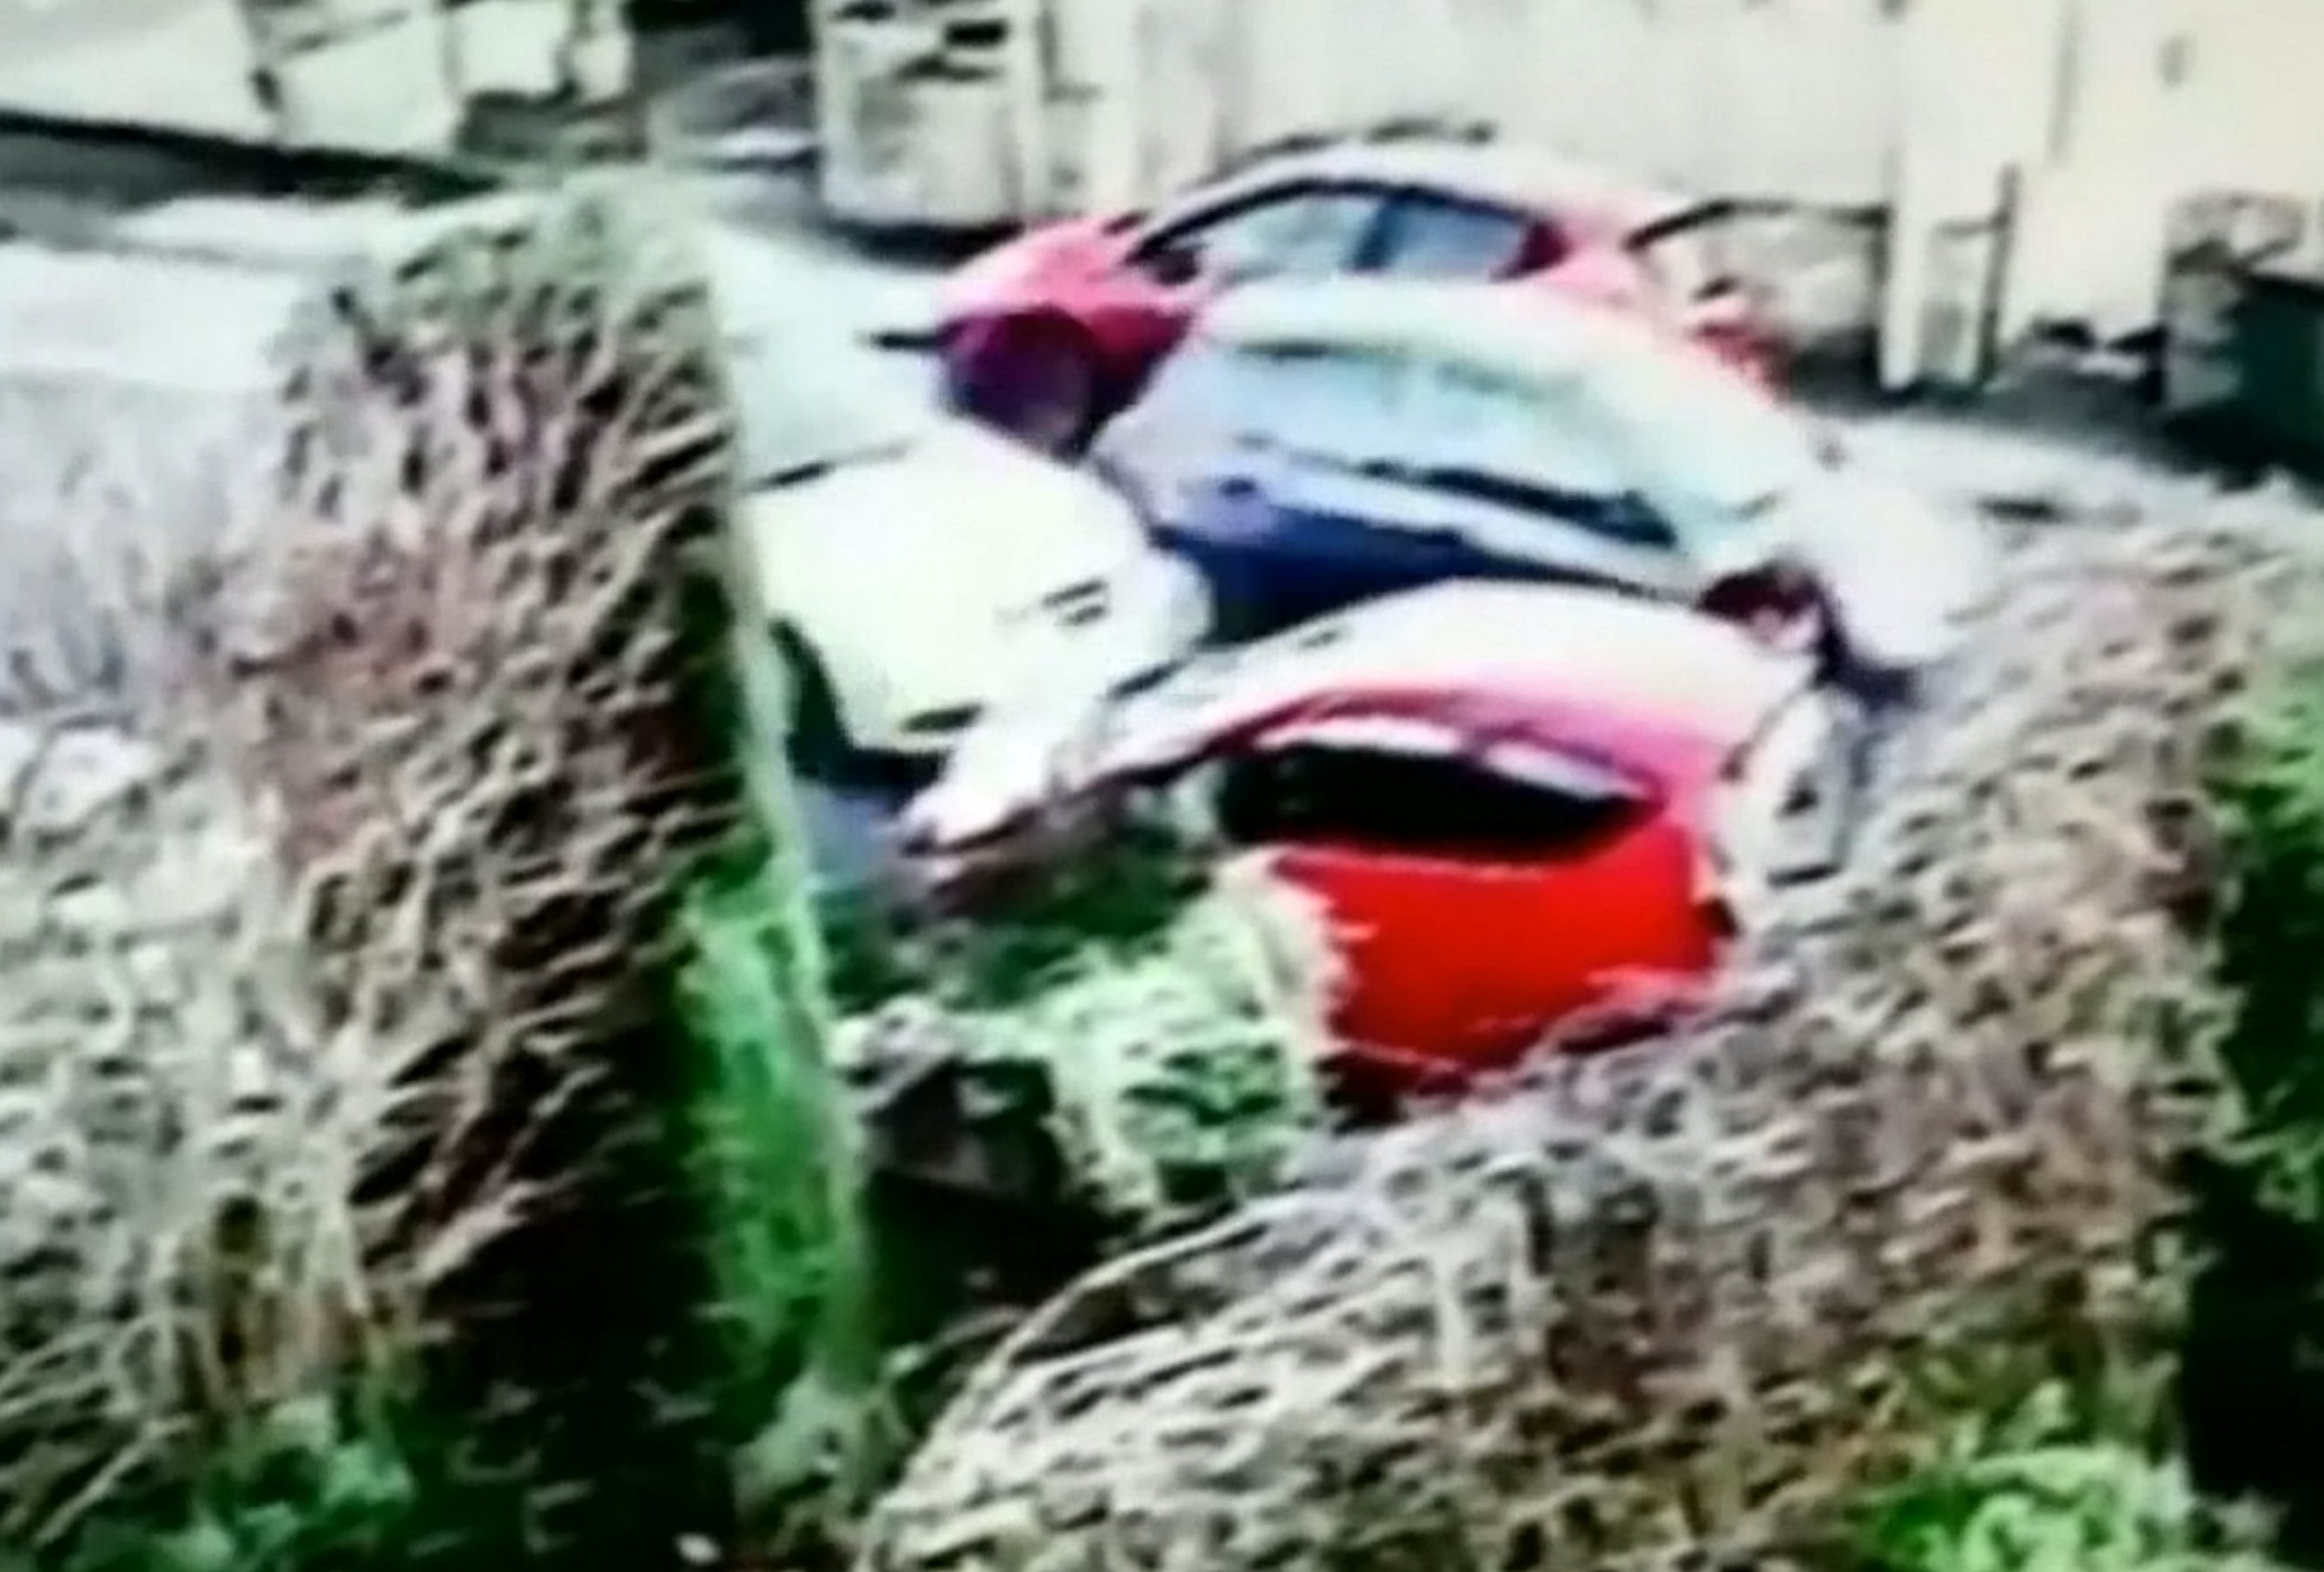 Gran knocked down by two cars picks herself up and heads home to make dinner